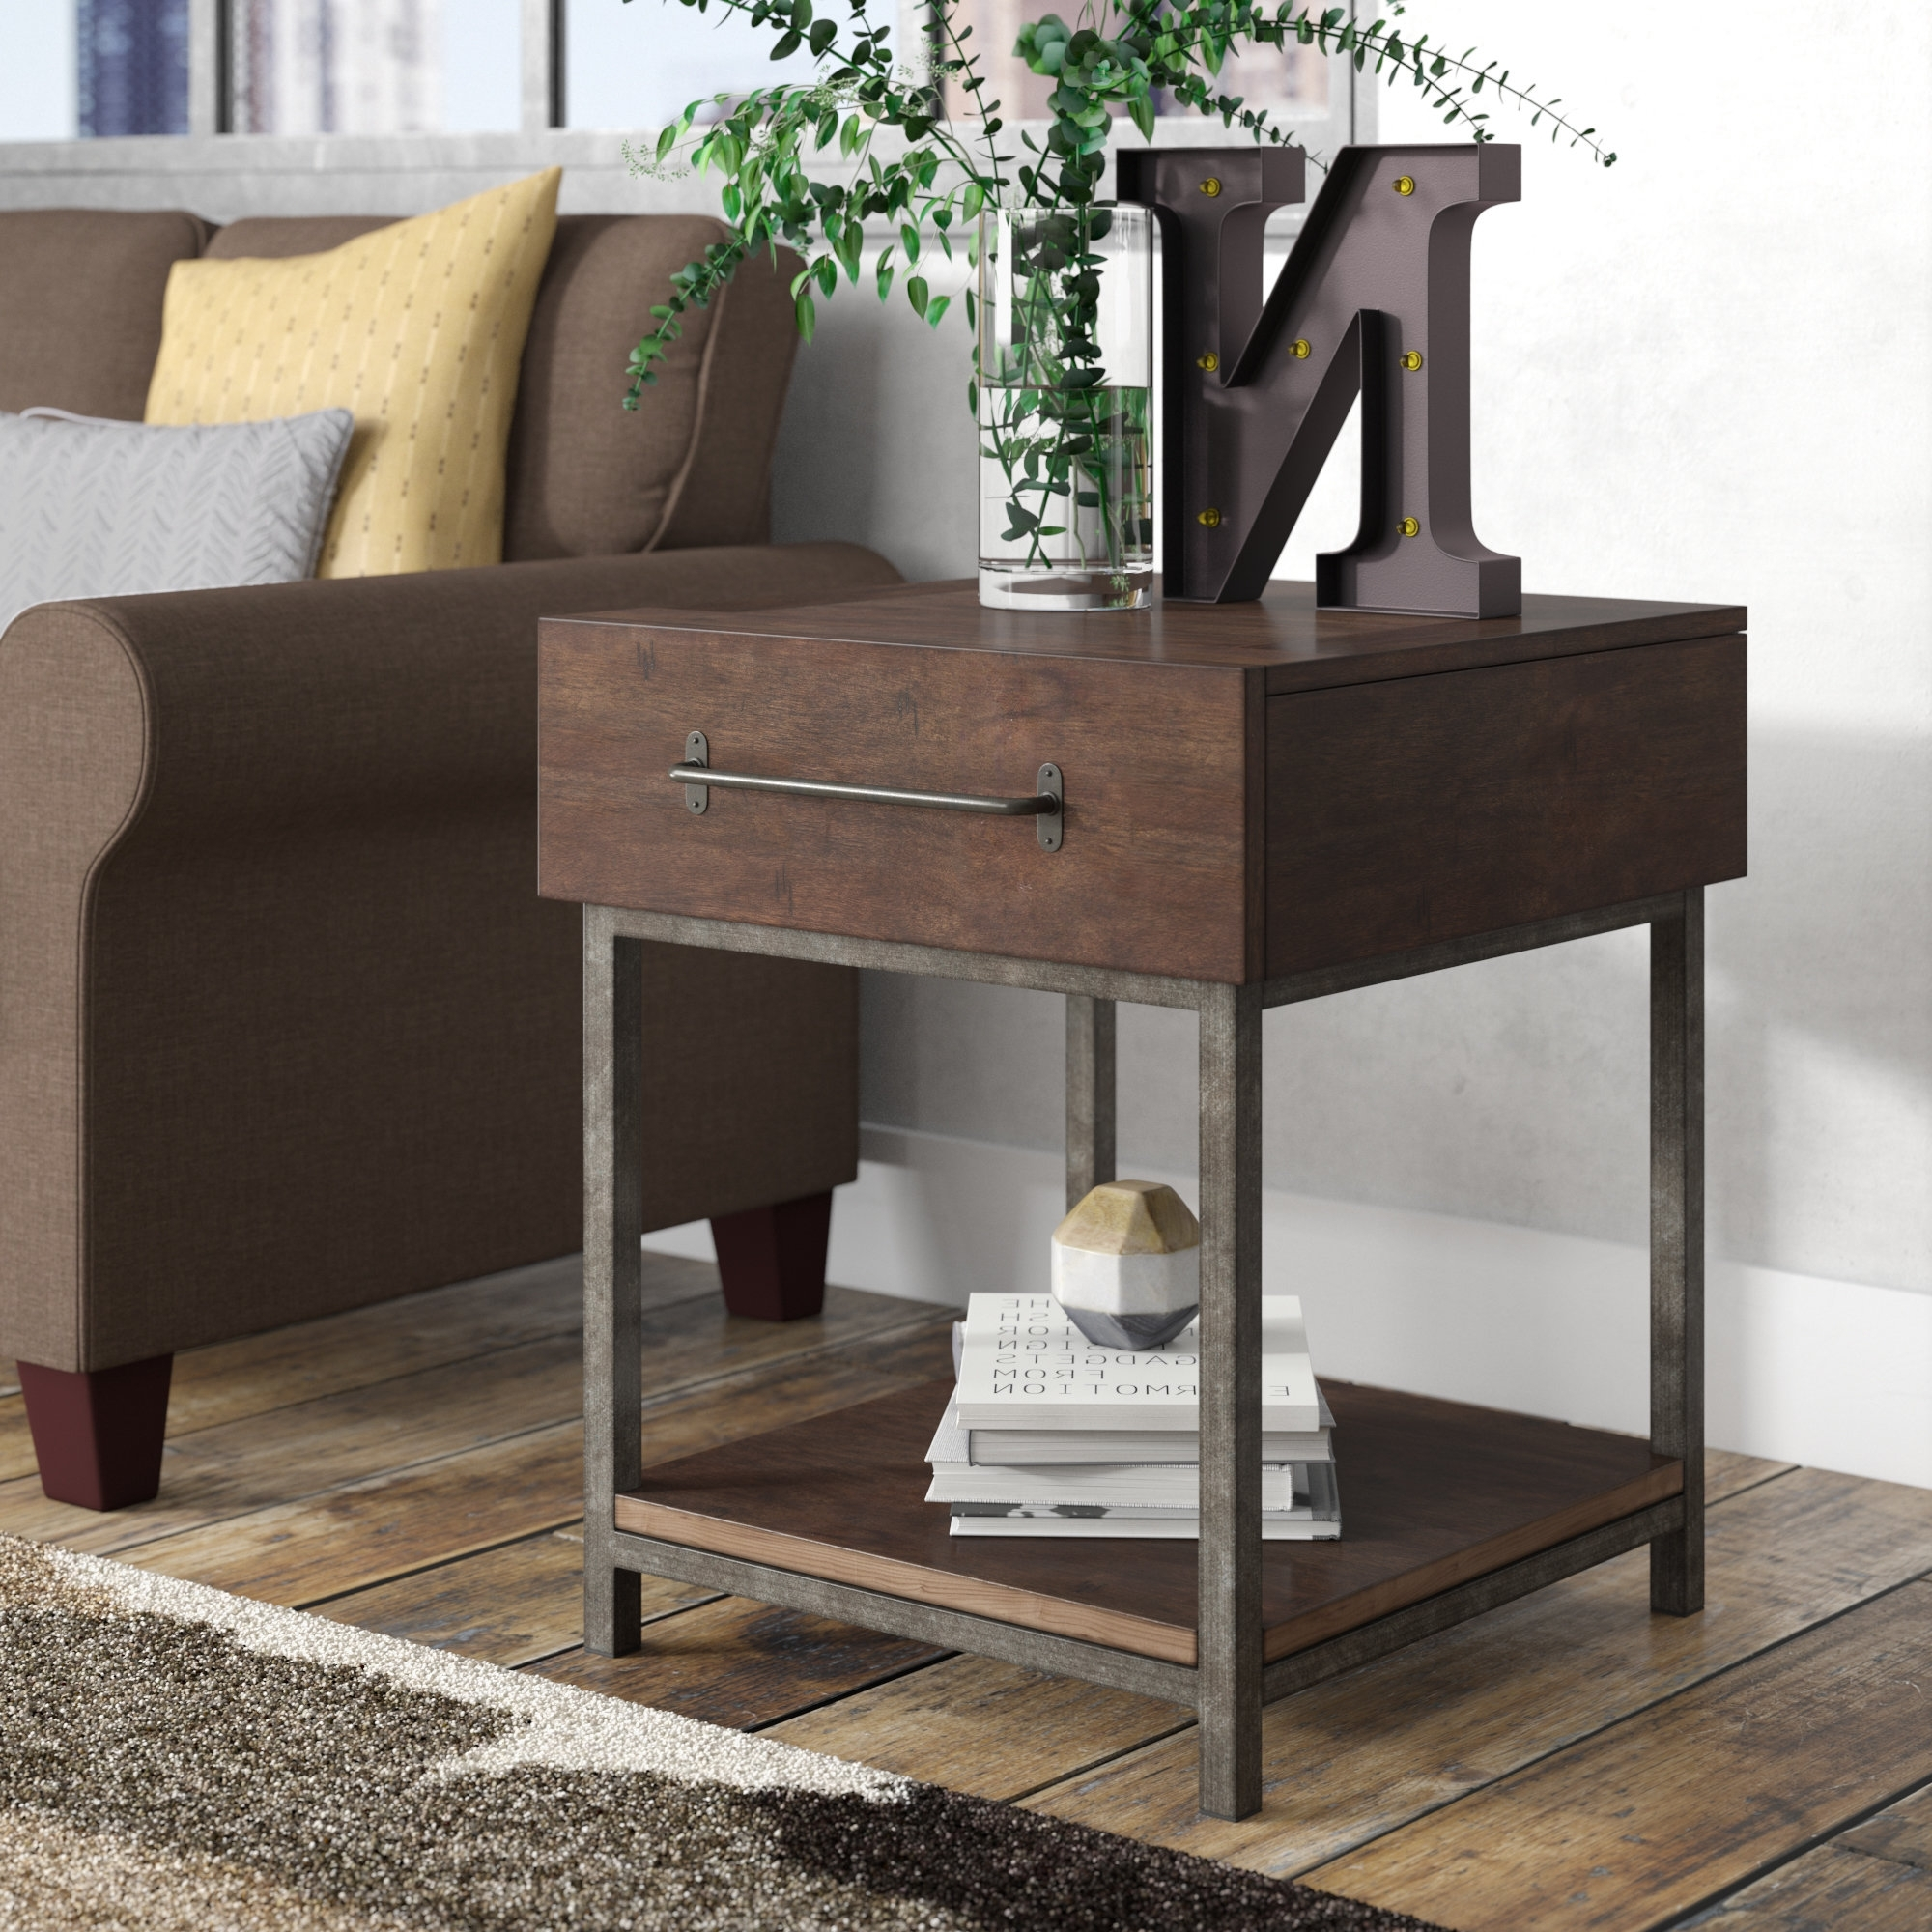 Wayfair Intended For Favorite Large Scale Chinese Farmhouse Coffee Tables (View 15 of 20)